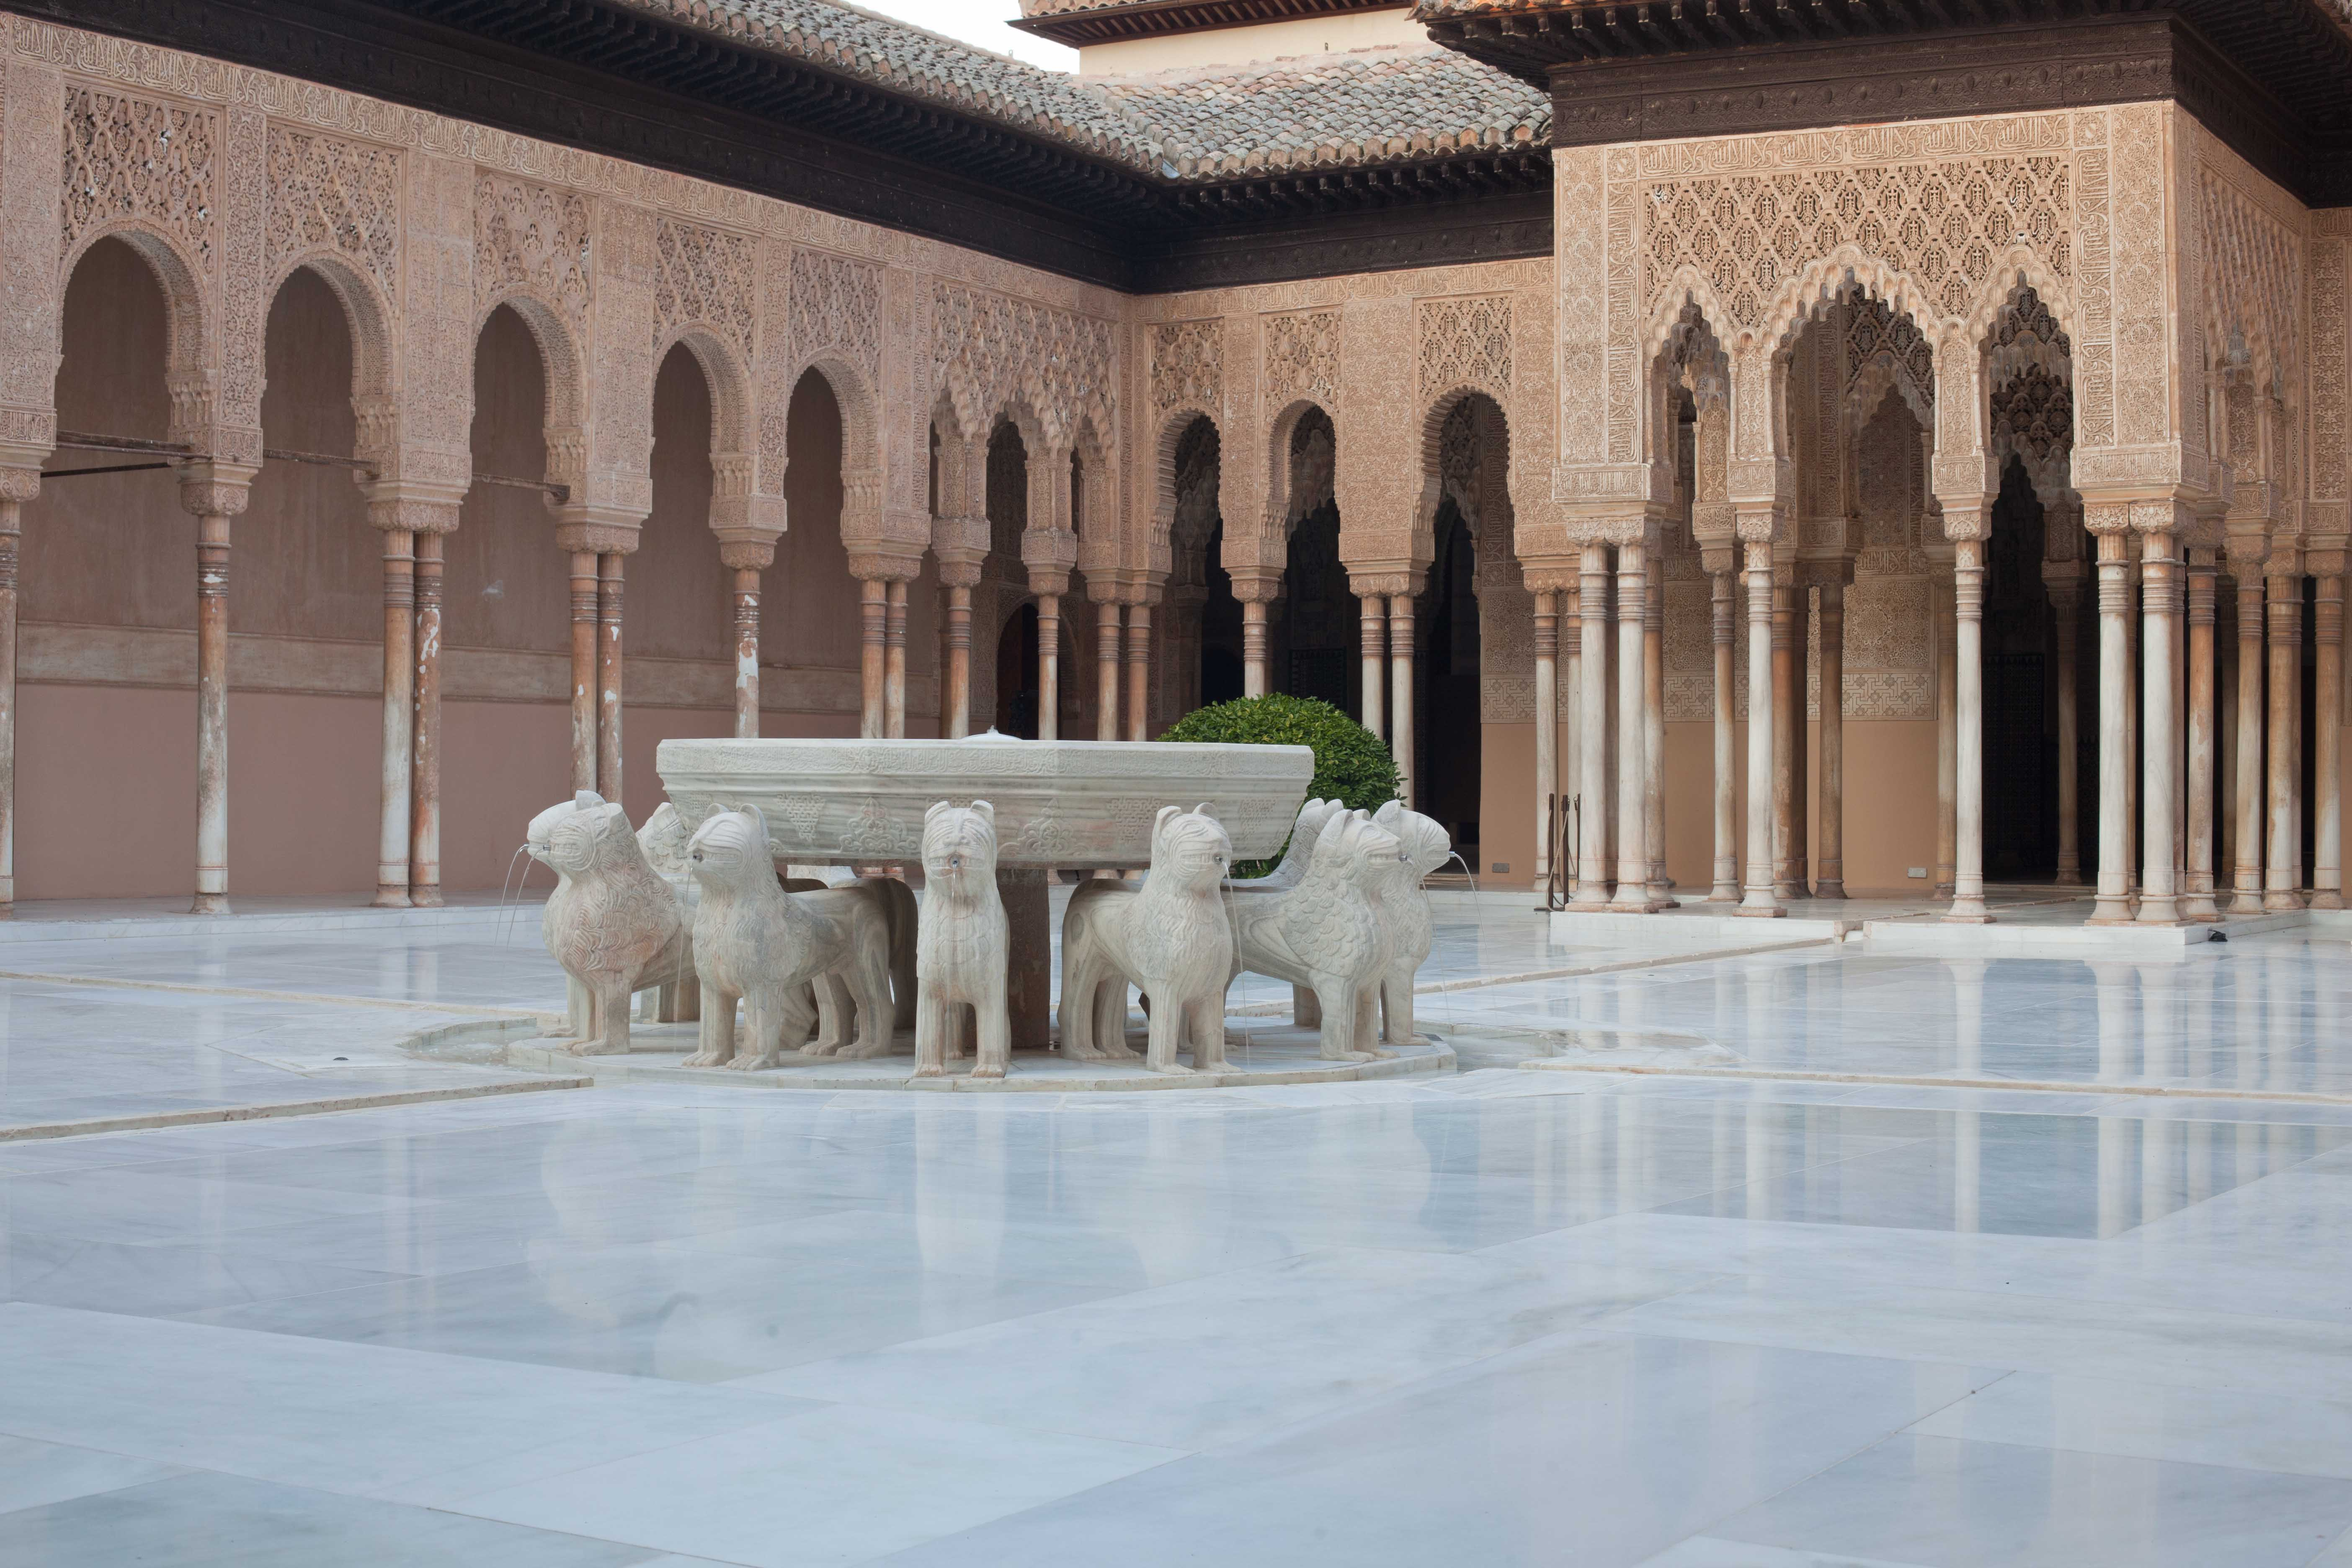 The Alhambra awarded a prize by the European Union for the restoration of the Court of the Lions